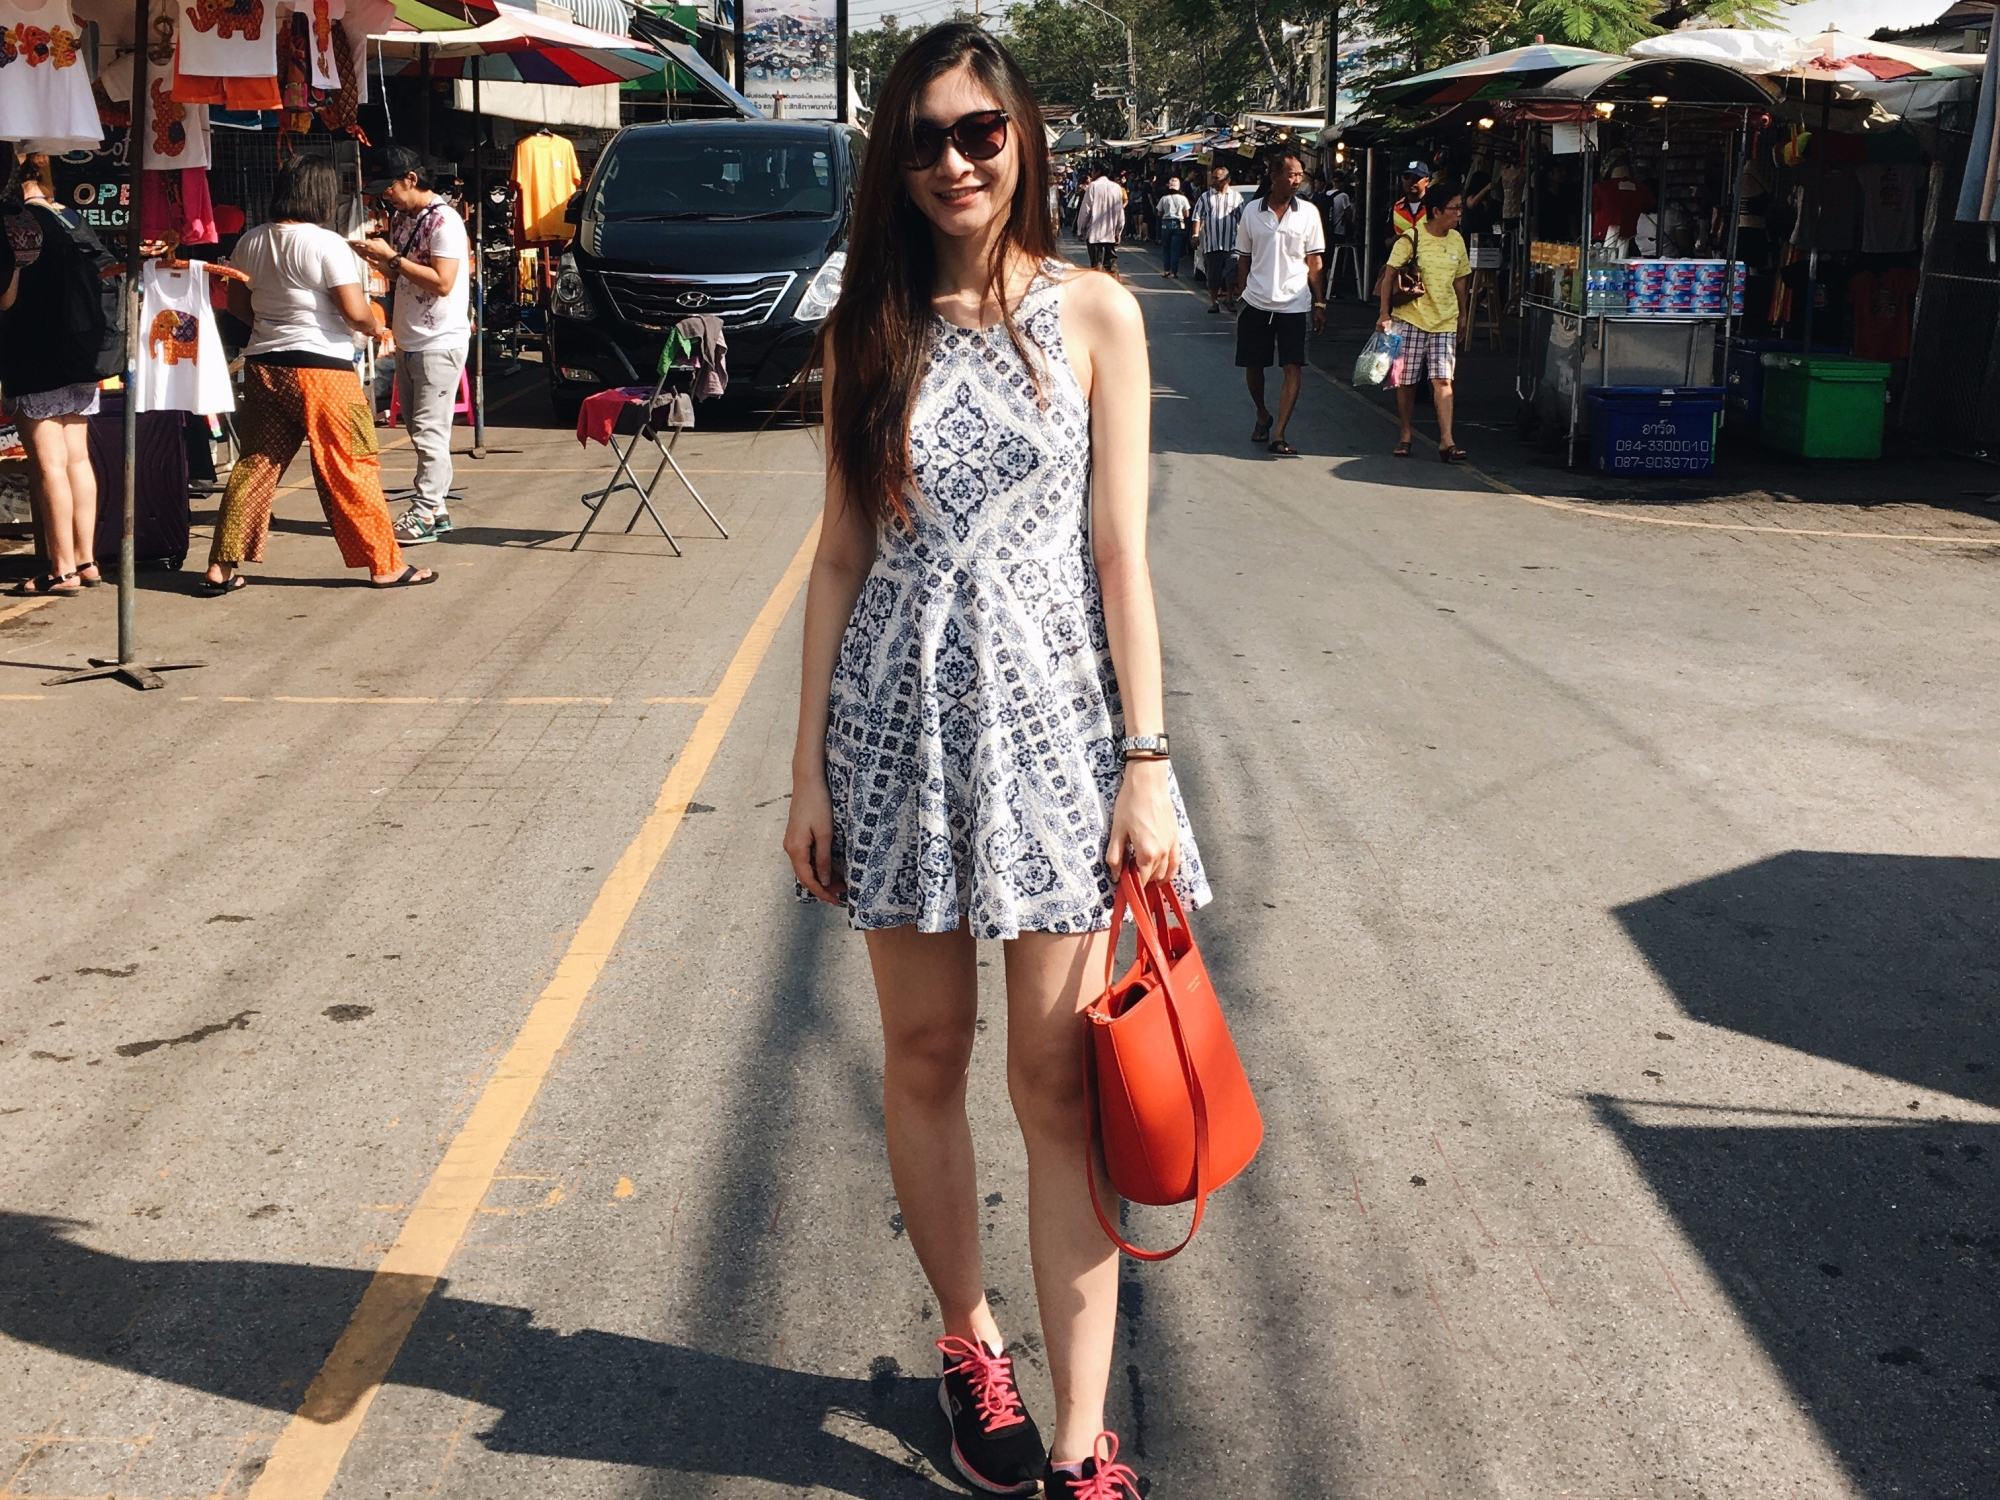 the-nat-channel-styled-by-n-street-style-dress-sneakers.JPG